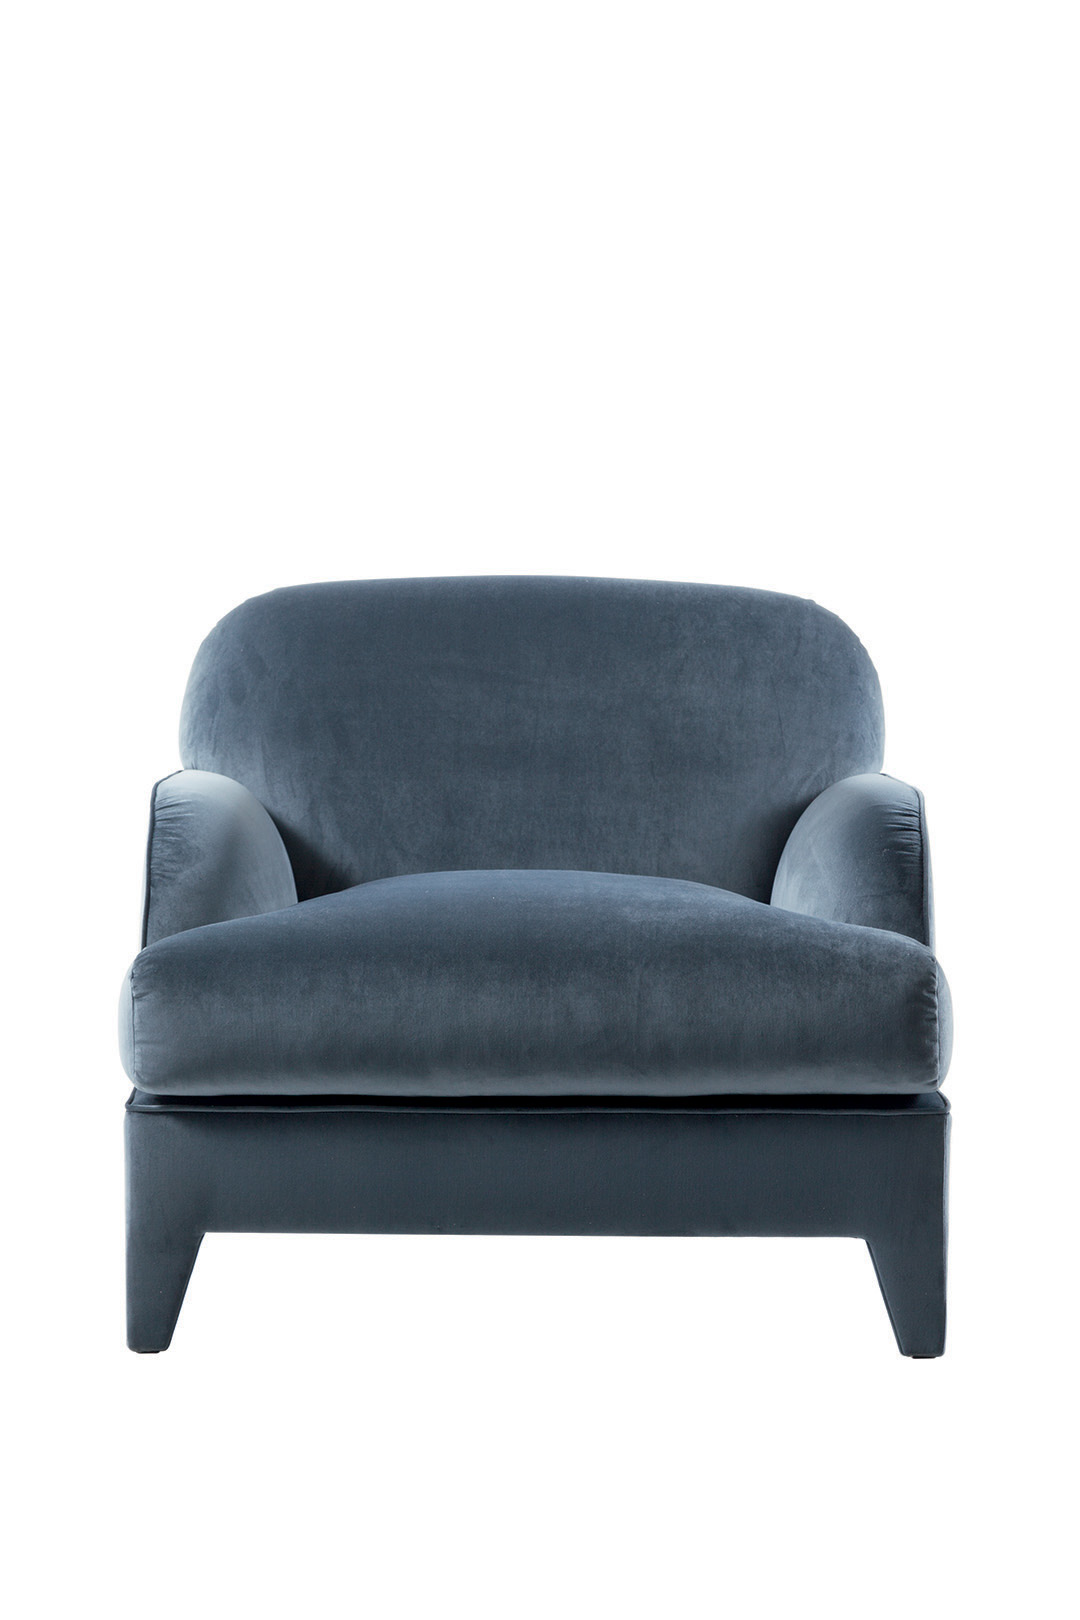 St germain armchair dreams line design for Albany st germain sectional sofa chaise